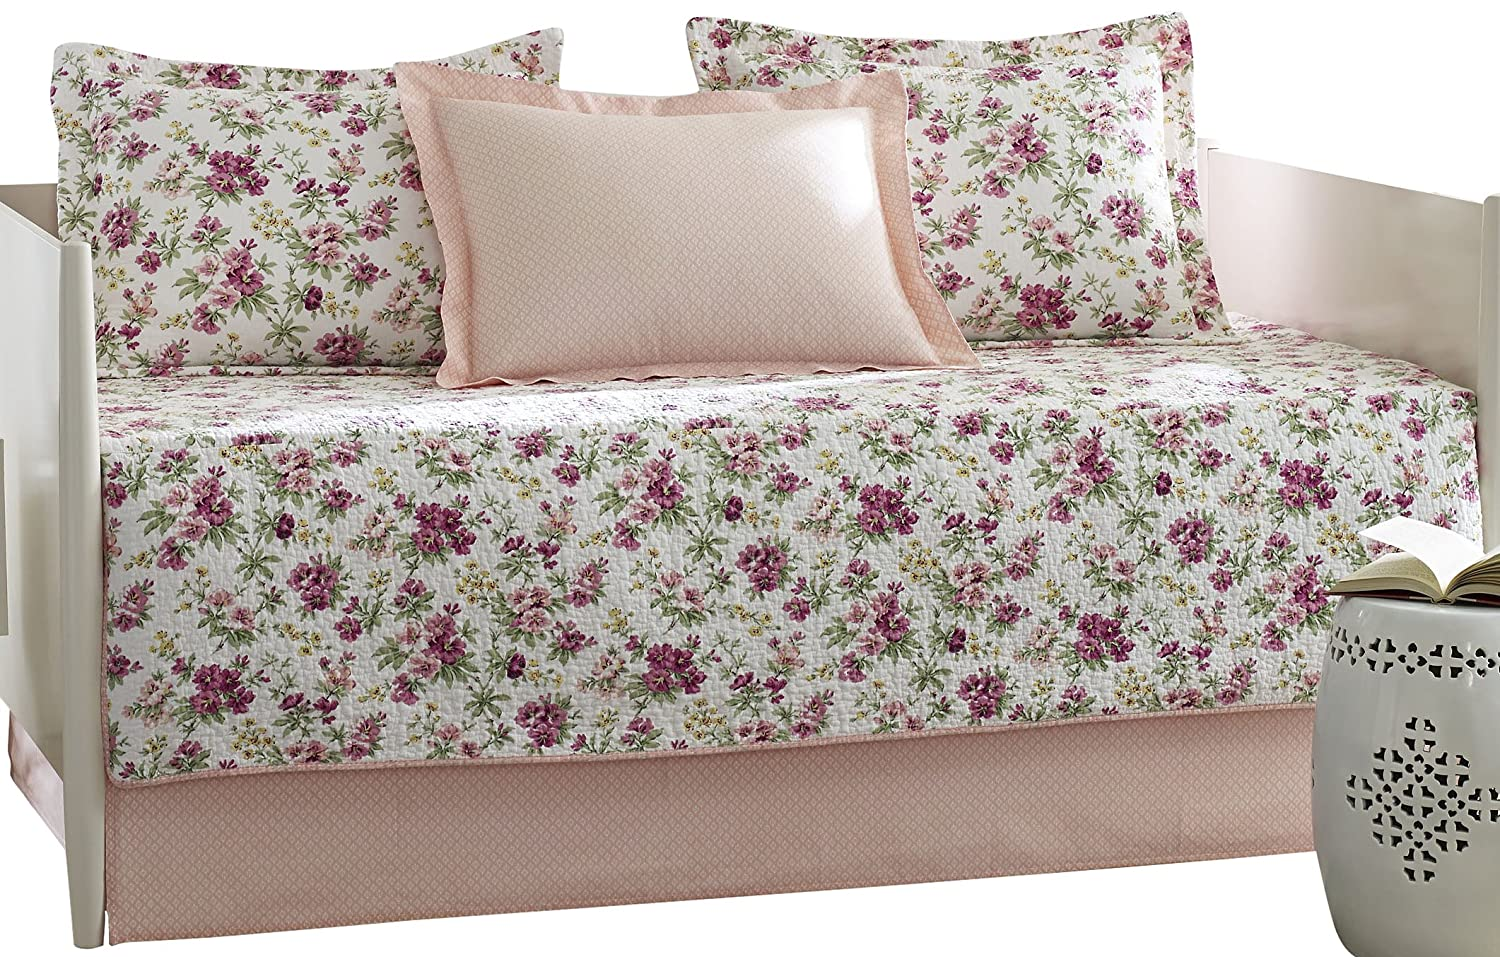 Laura Ashley 5-Piece Dorthea Pink Daybed Cover Set, Twin, Floral